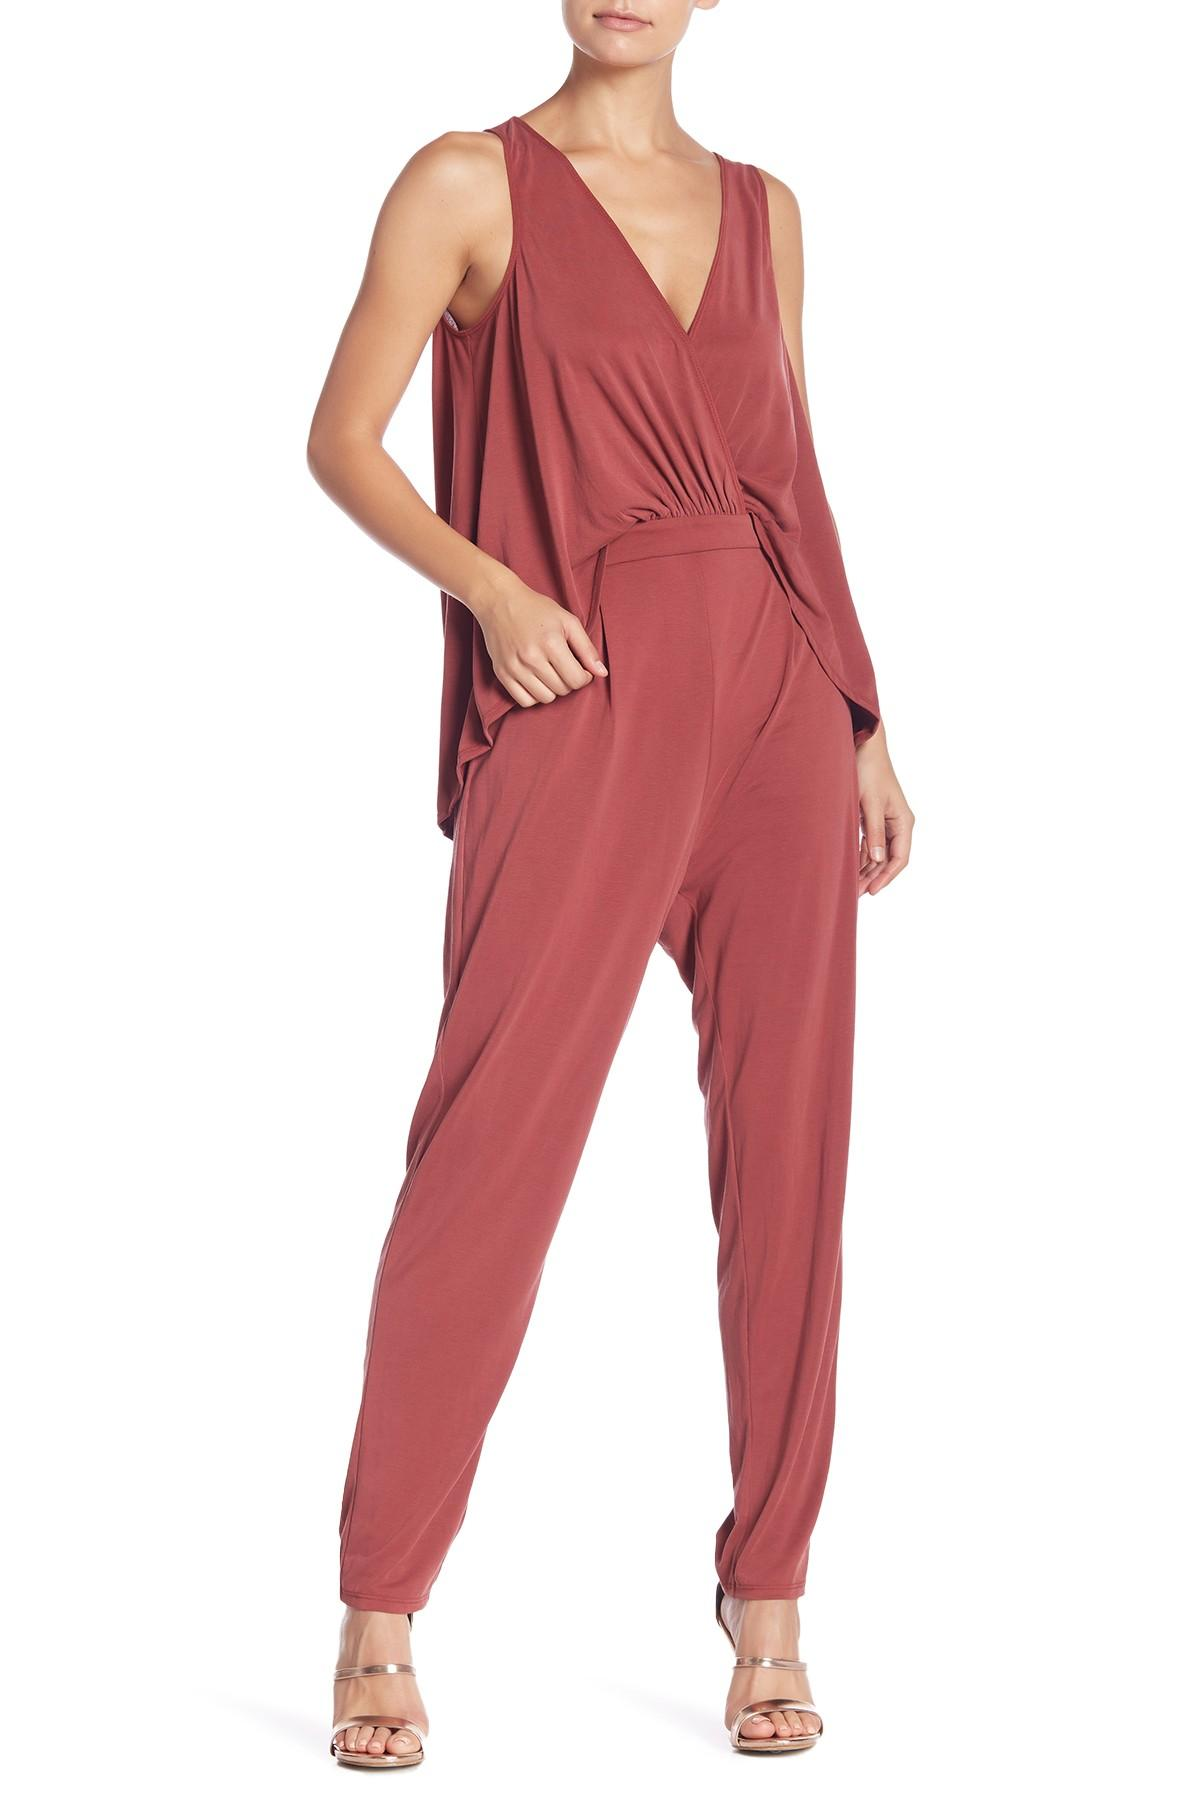 77d4e535ae04 Lyst - BCBGeneration Cape Jumpsuit in Red - Save 8%